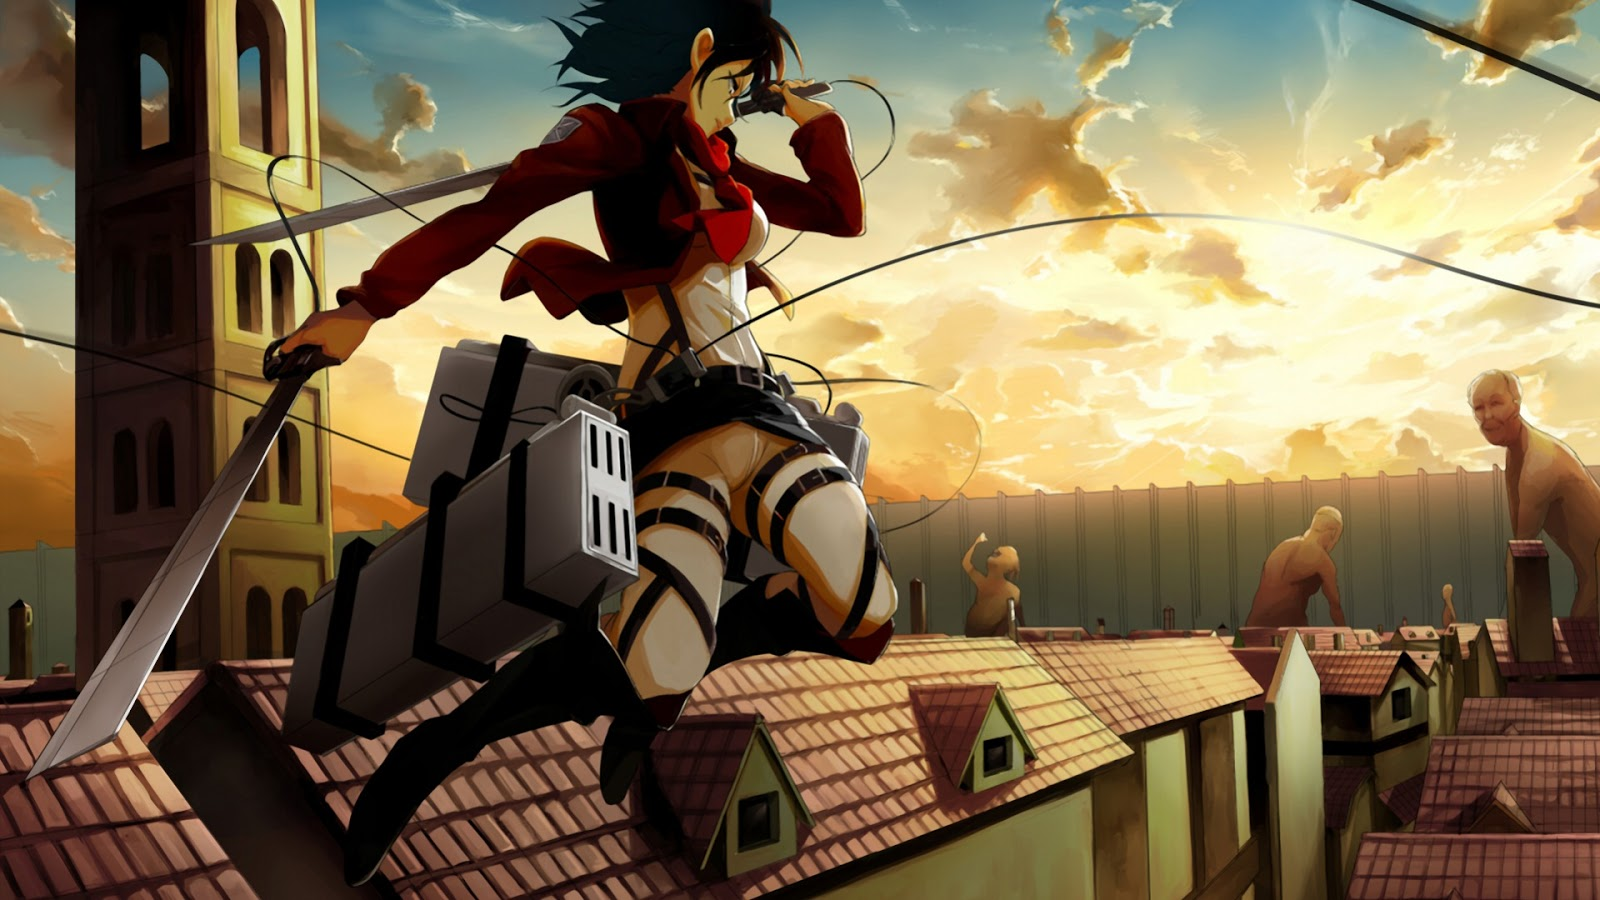 Attack On Titan Wallpaper Attack On Titan Wallpaper Mikasa 1600x900 Download Hd Wallpaper Wallpapertip